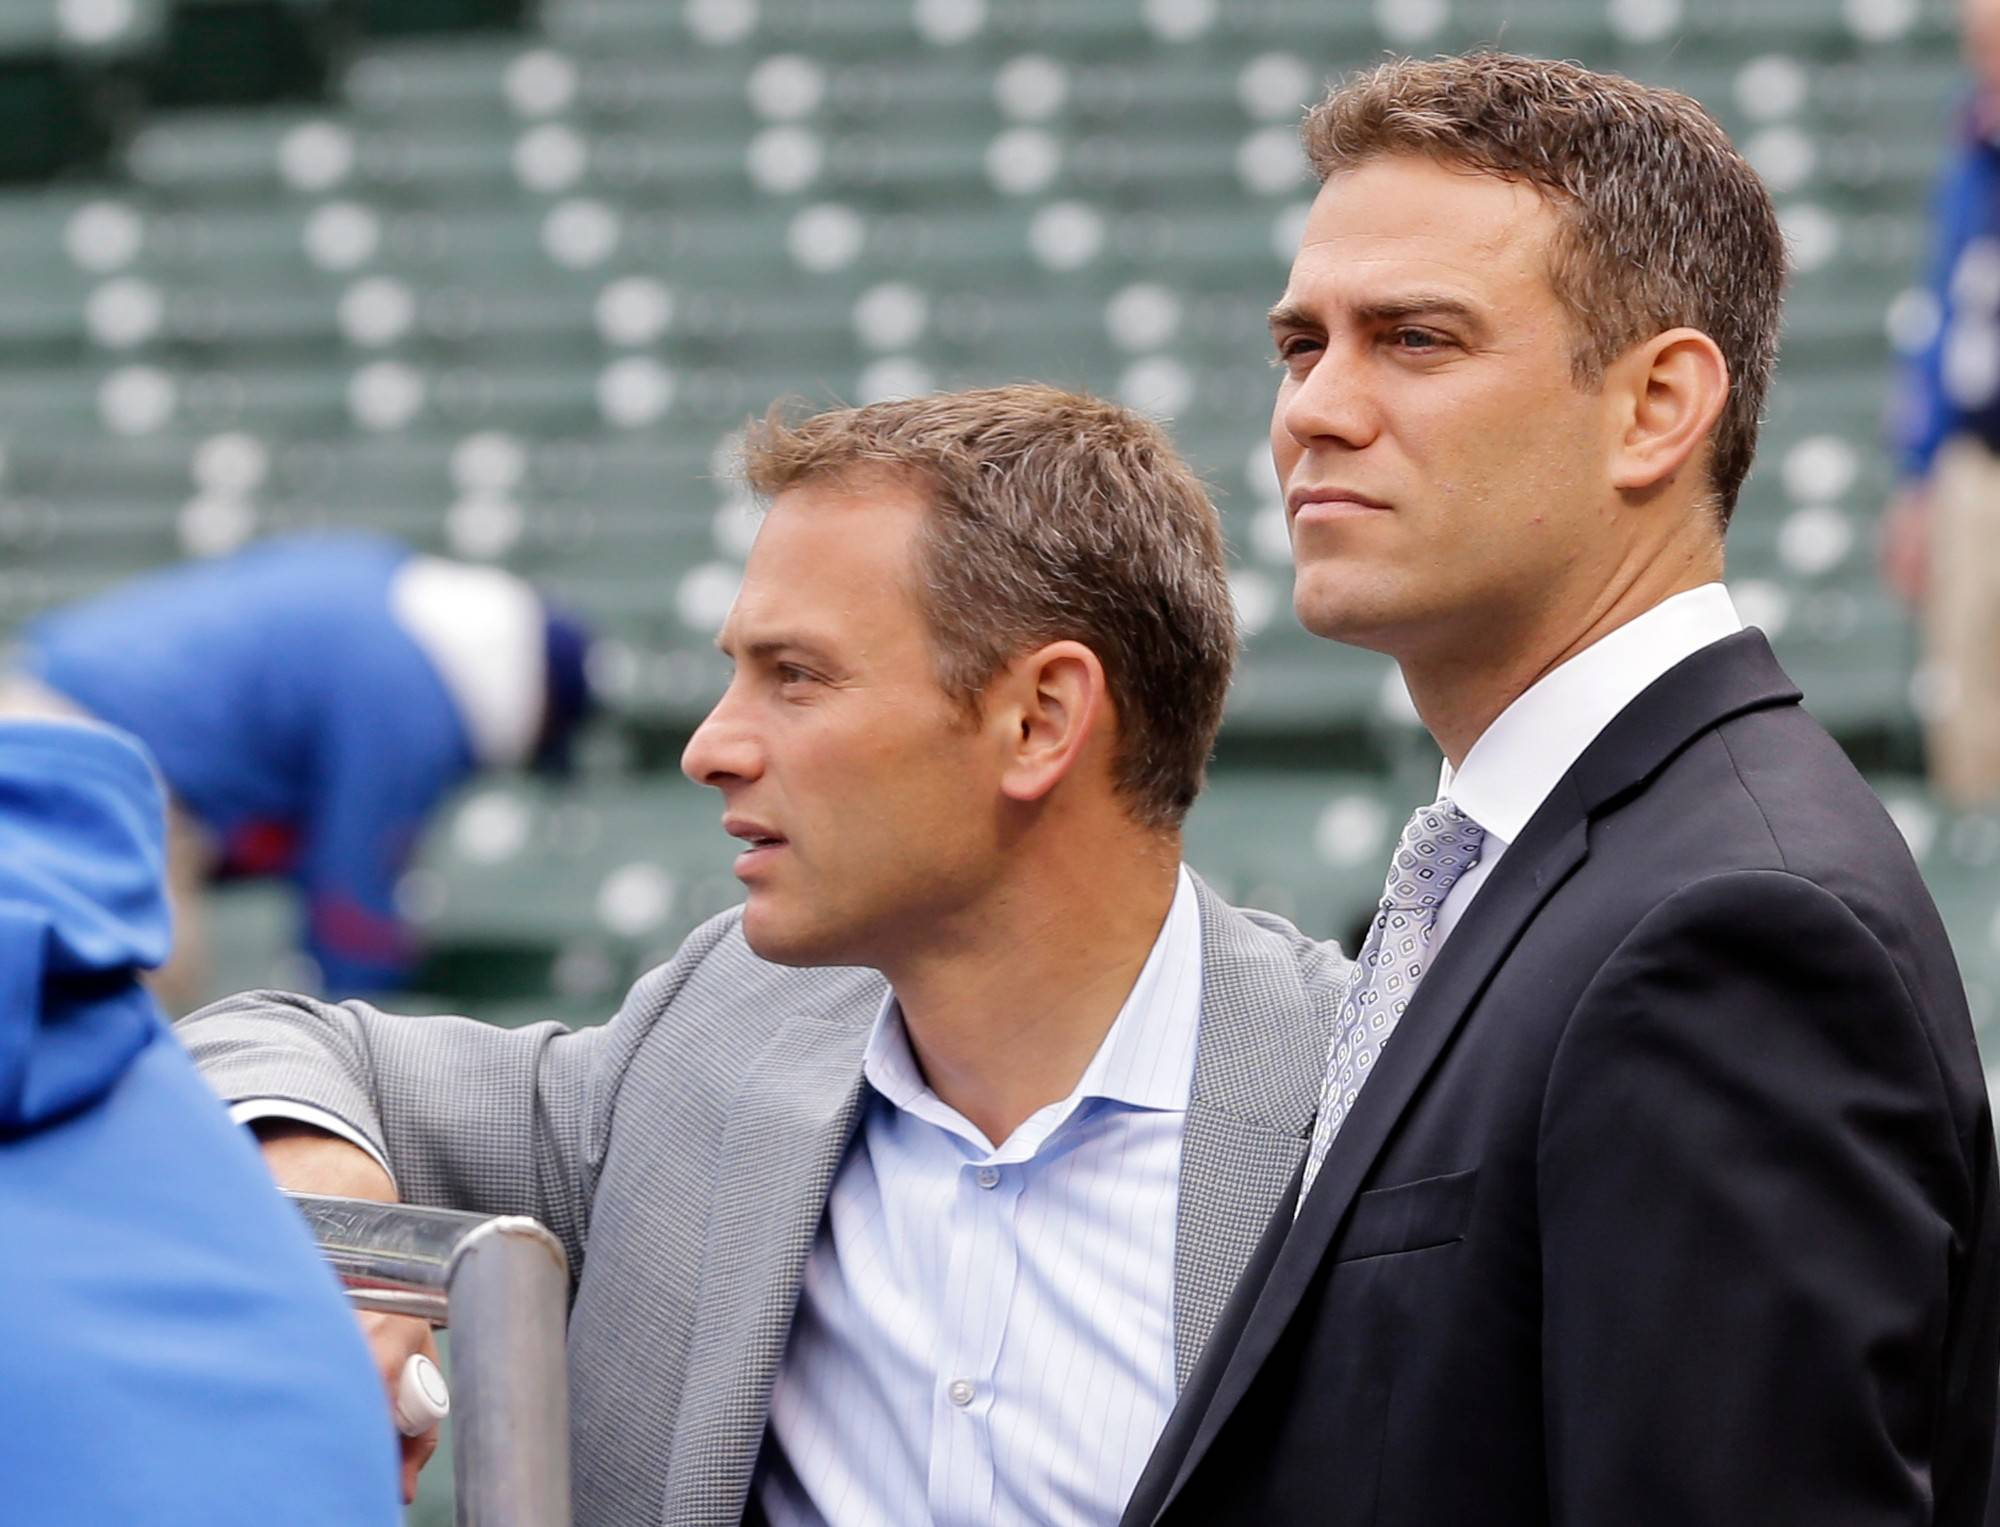 Cubs president of baseball operations Theo Epstein, right, shown here with general manager Jed Hoyer, caused an incredulous Mike North to laugh when he heard the team hired Manny Ramirez as a player-coach at Triple A Iowa.